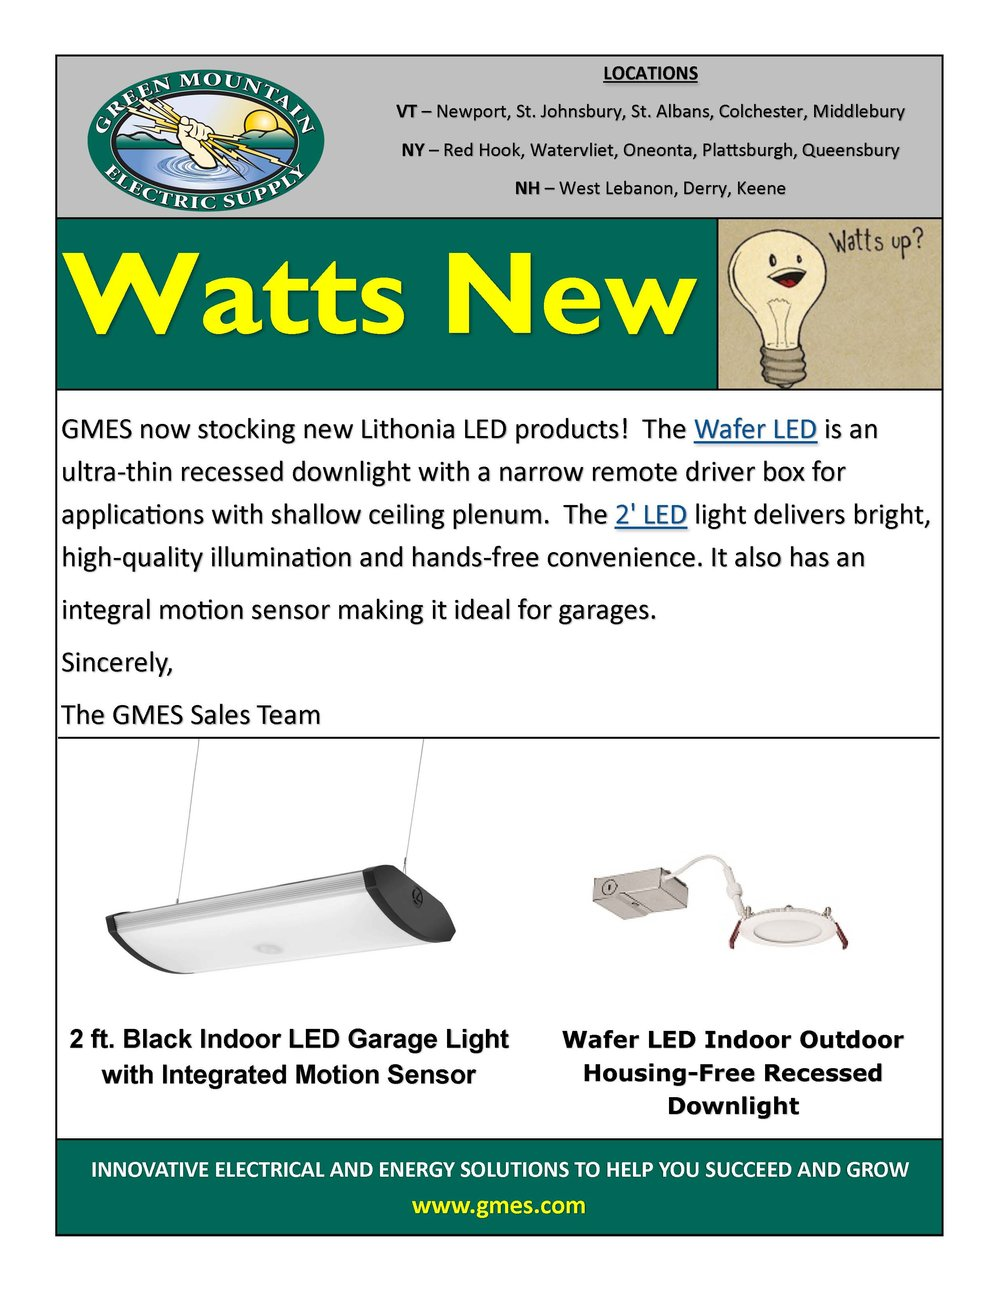 News Gmes Nys Residential Wiring Code New Lithonia Led Products